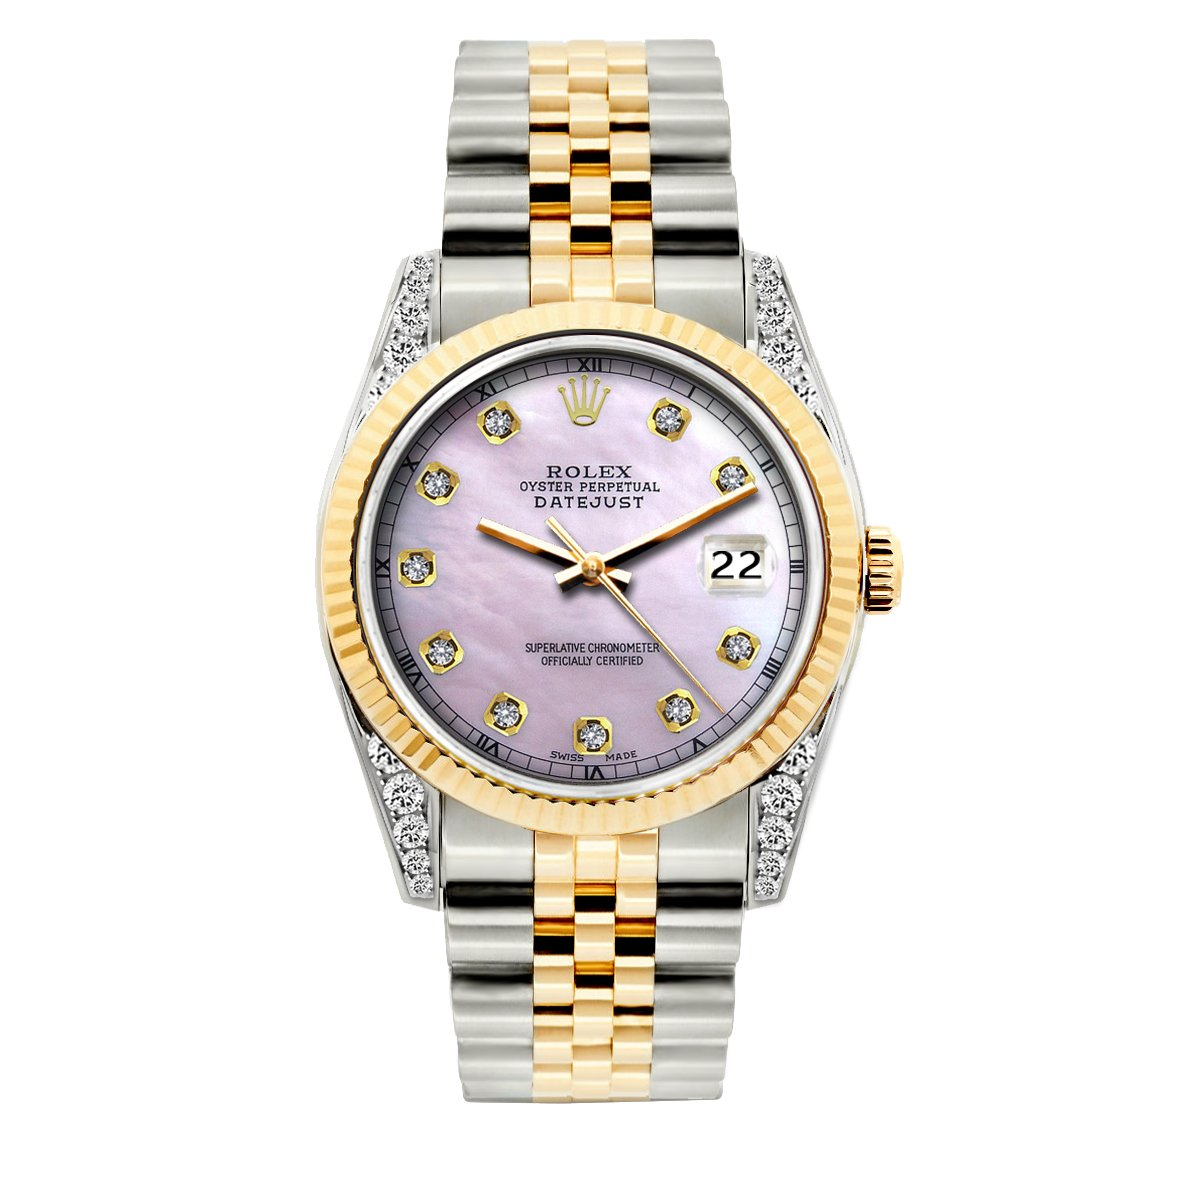 Rolex Datejust Diamond Watch, 36mm, Yellow Gold and Stainless Steel Bracelet Lavender Dial w/ Diamond Lugs